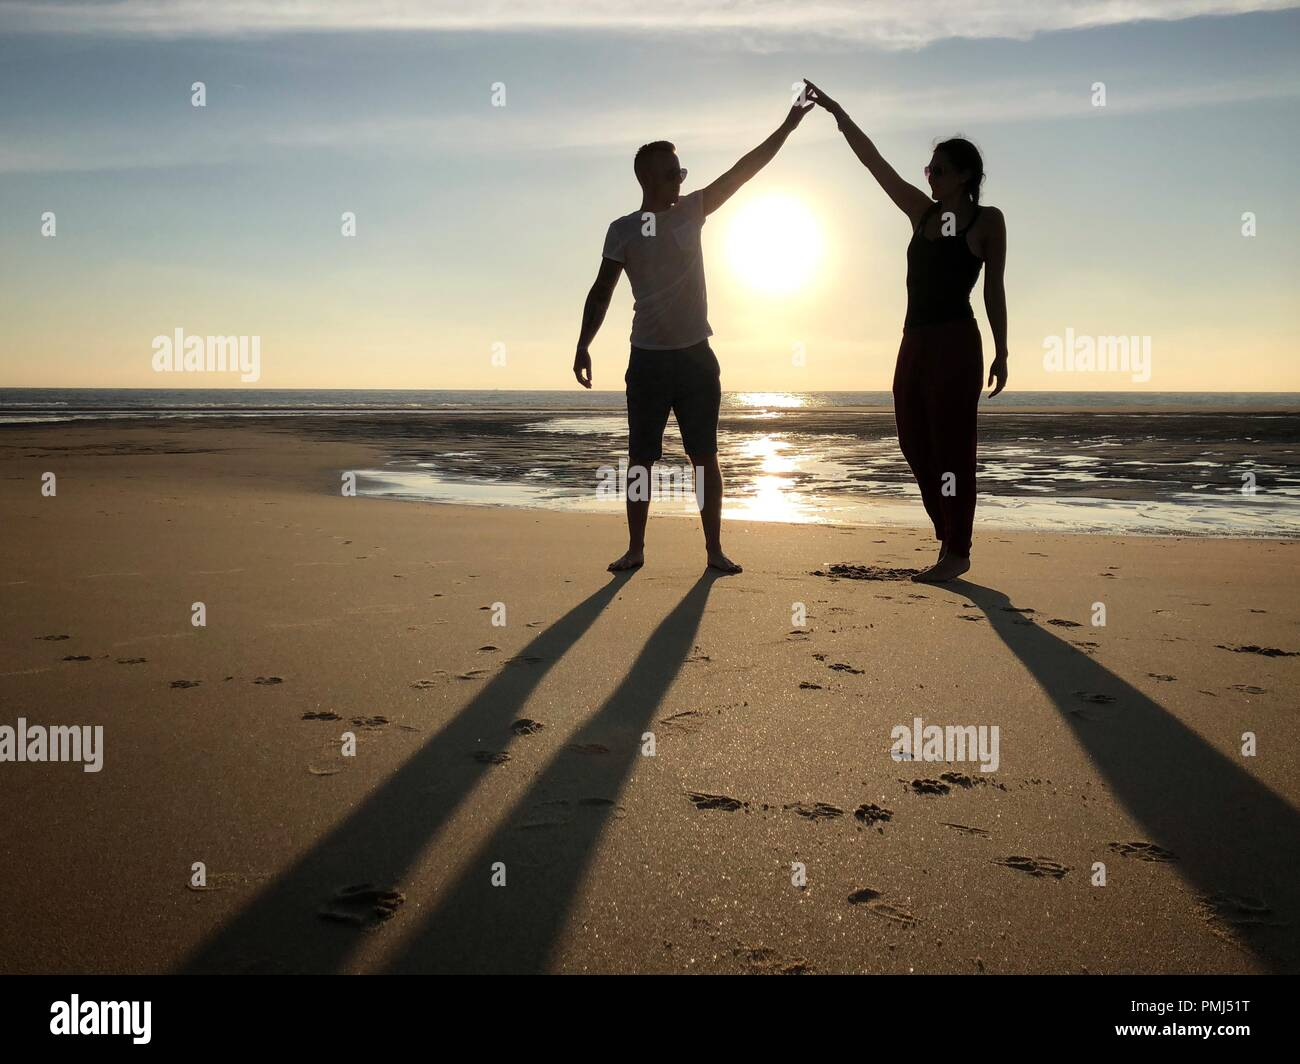 Silhouette of a Man and woman messing about on a beach, Pointe Espagnole, La Tremblade, Charente-Maritime, France - Stock Image